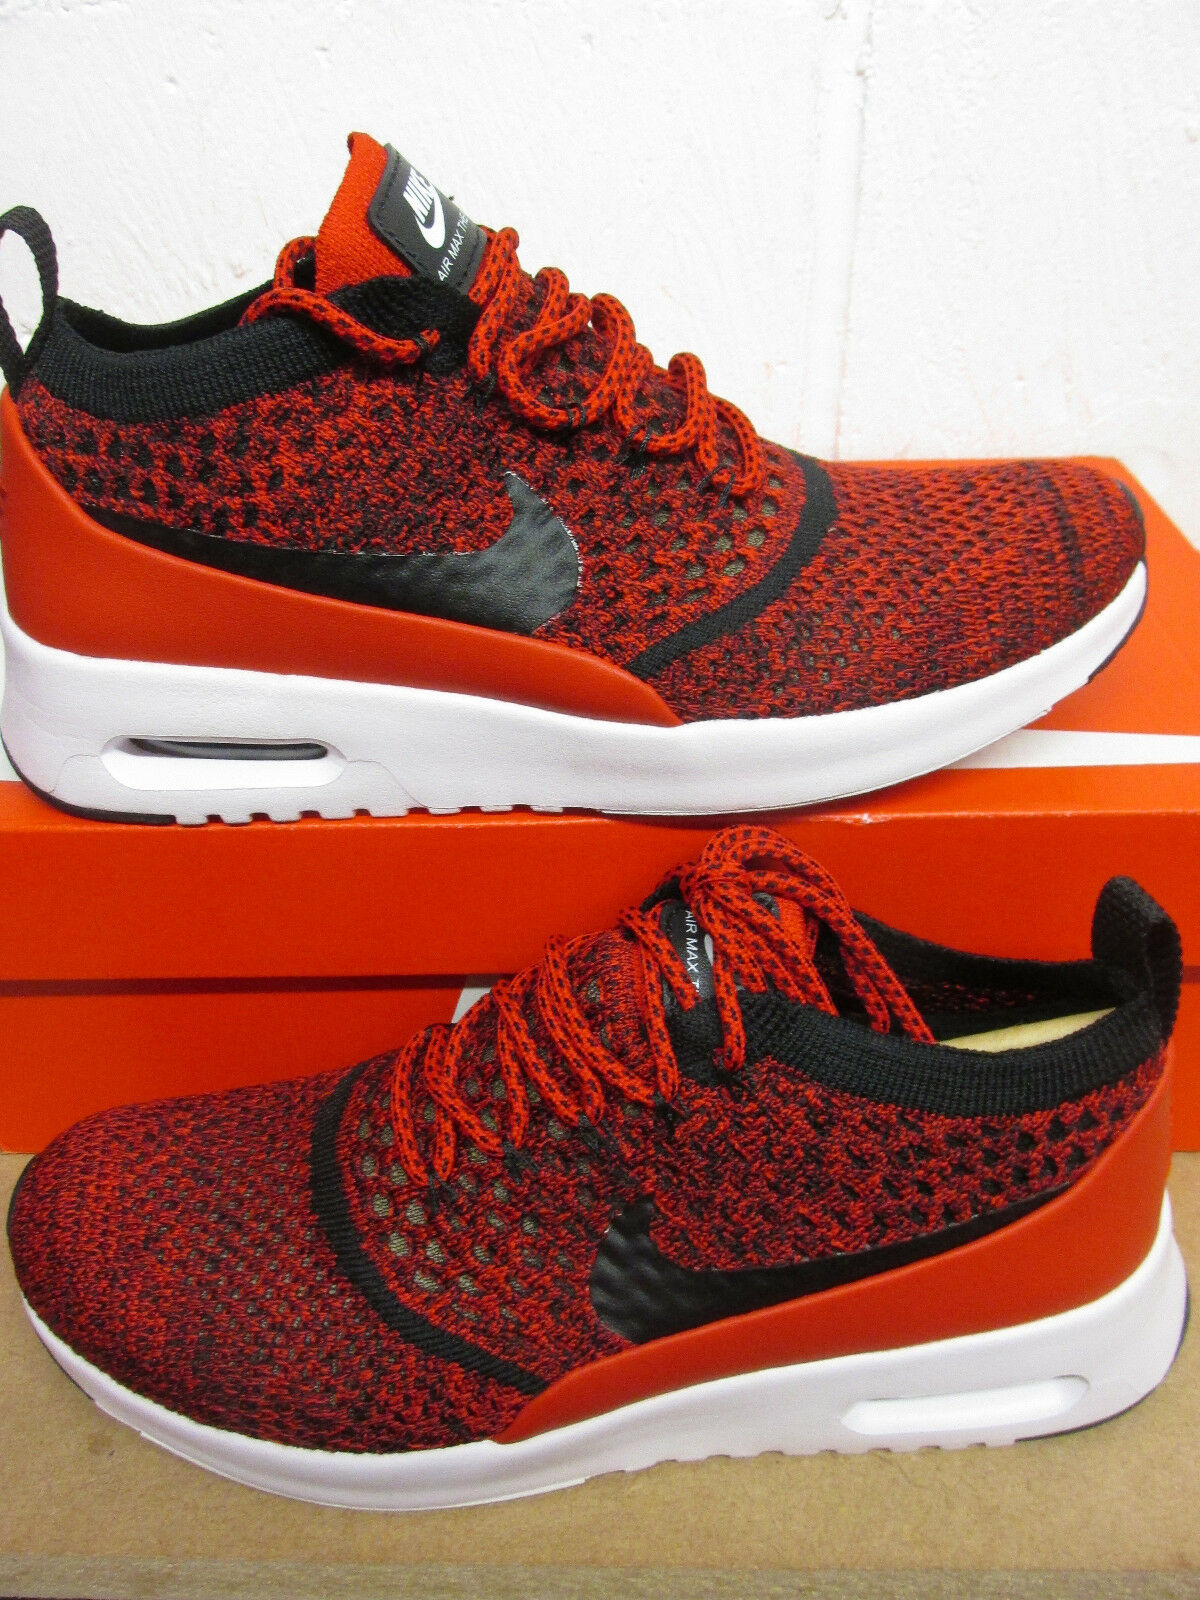 Casual wild Nike Air Max Thea Ultra FK Womens Running Trainers 881175 601 Sneakers Shoes